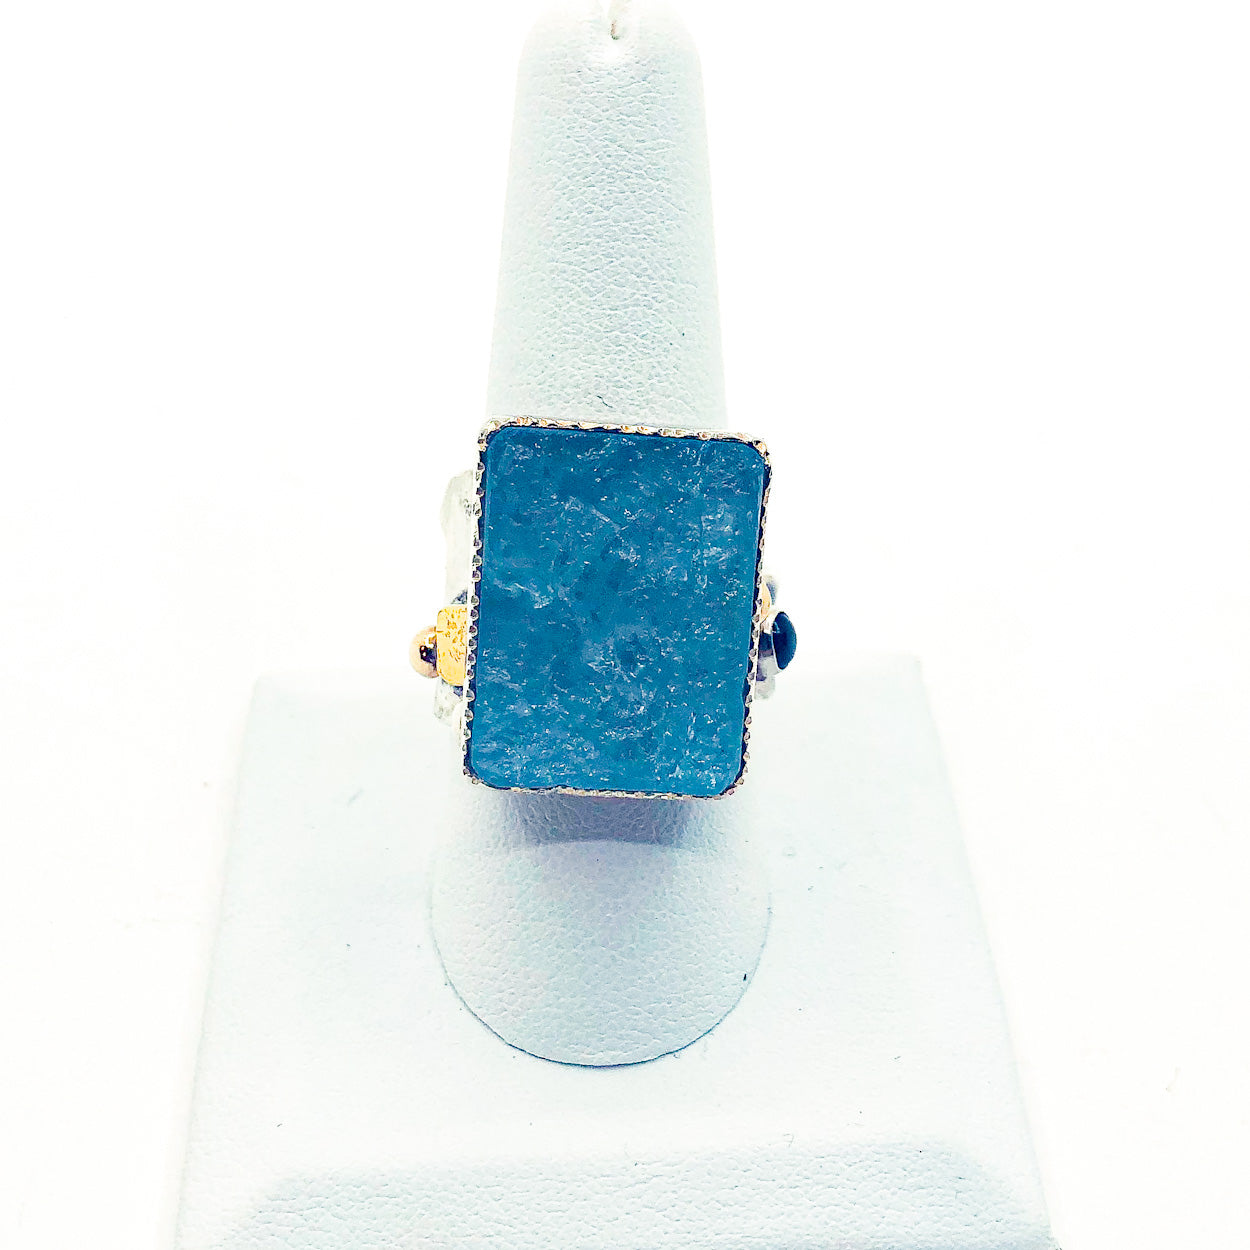 Sterling, 22k, 14k Deckled Edge Ring with Natural Surface Aquamarine and Blue Topaz by Judie Raiford